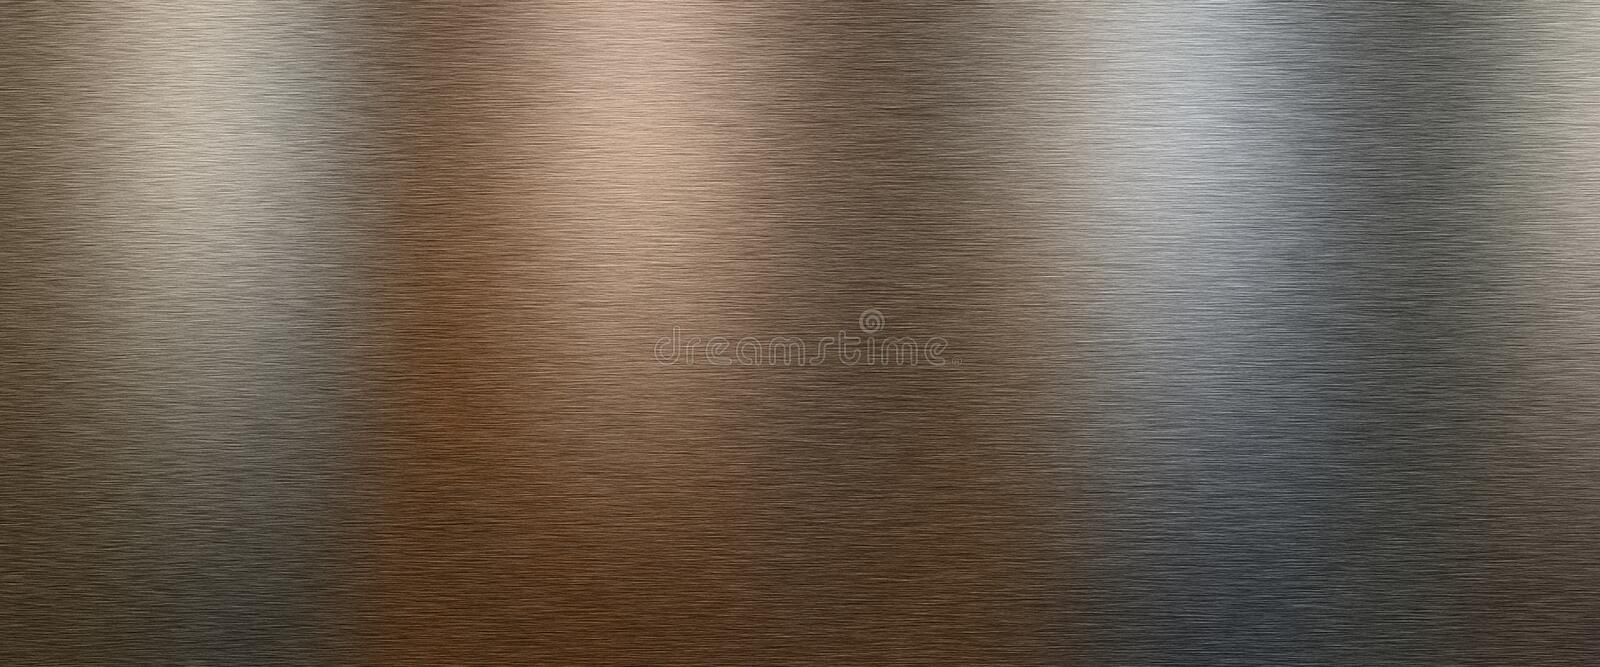 Colored metal texture background royalty free stock images